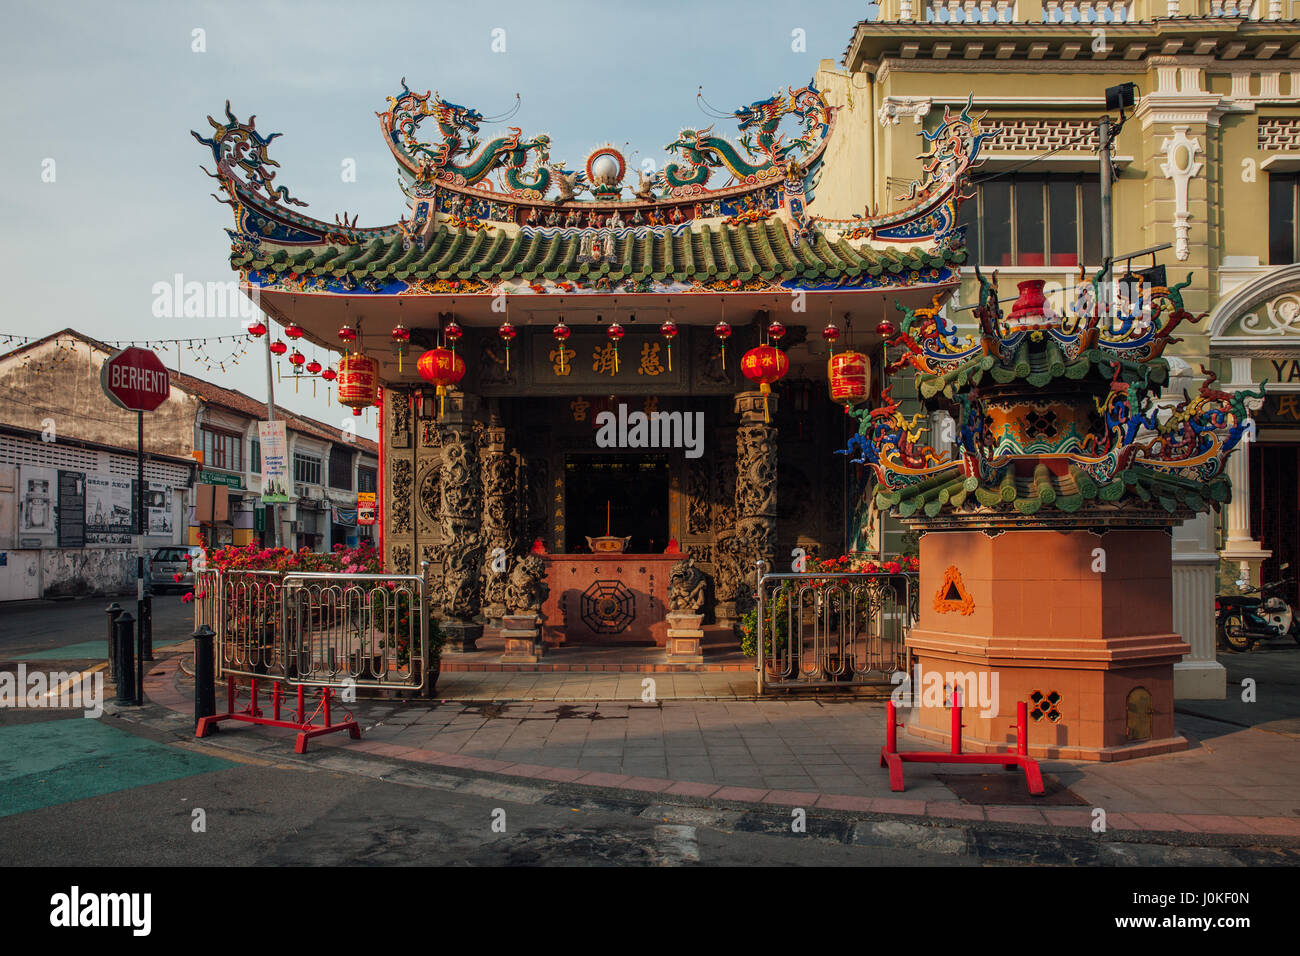 George Town, Malaysia - March 21, 2016: Sunset view of the Choo Chay Keong Temple adjoined to Yap Kongsi clan house, Stock Photo